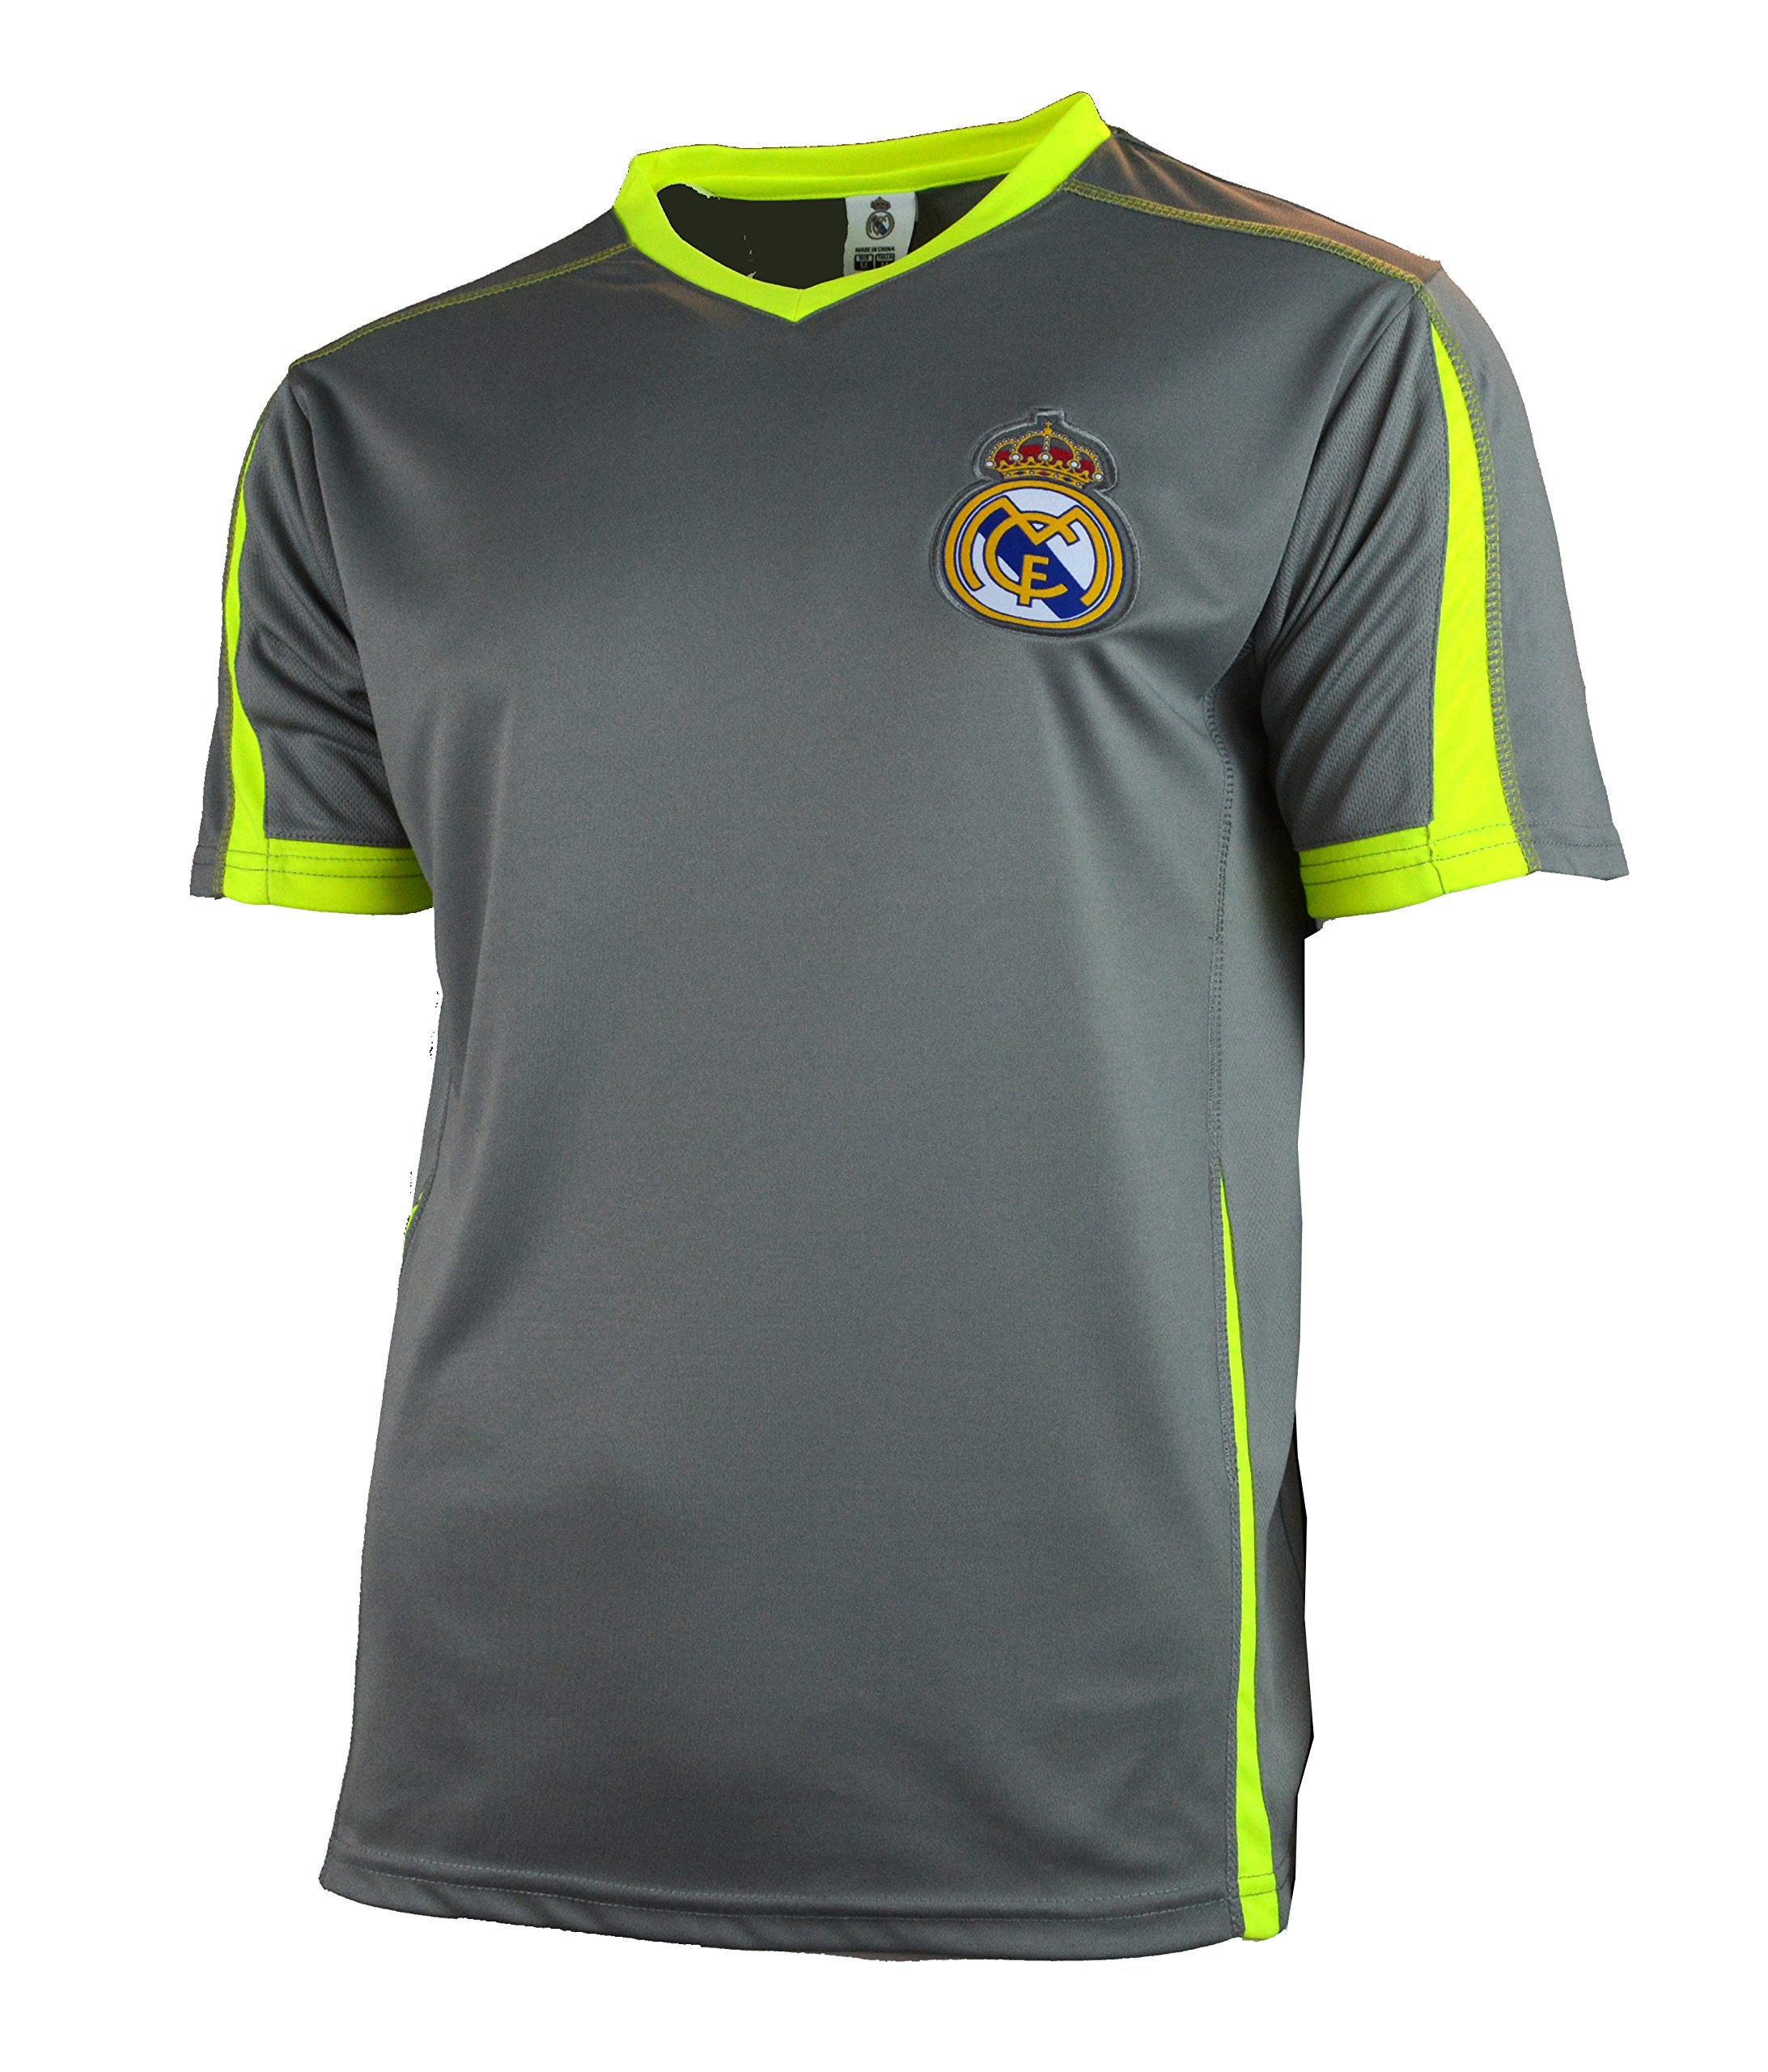 45d645172 Real Madrid Fc Soccer Jersey Adult Training Add Any Name and Number –  Custom Name and Number Ronaldo 7 Misc.